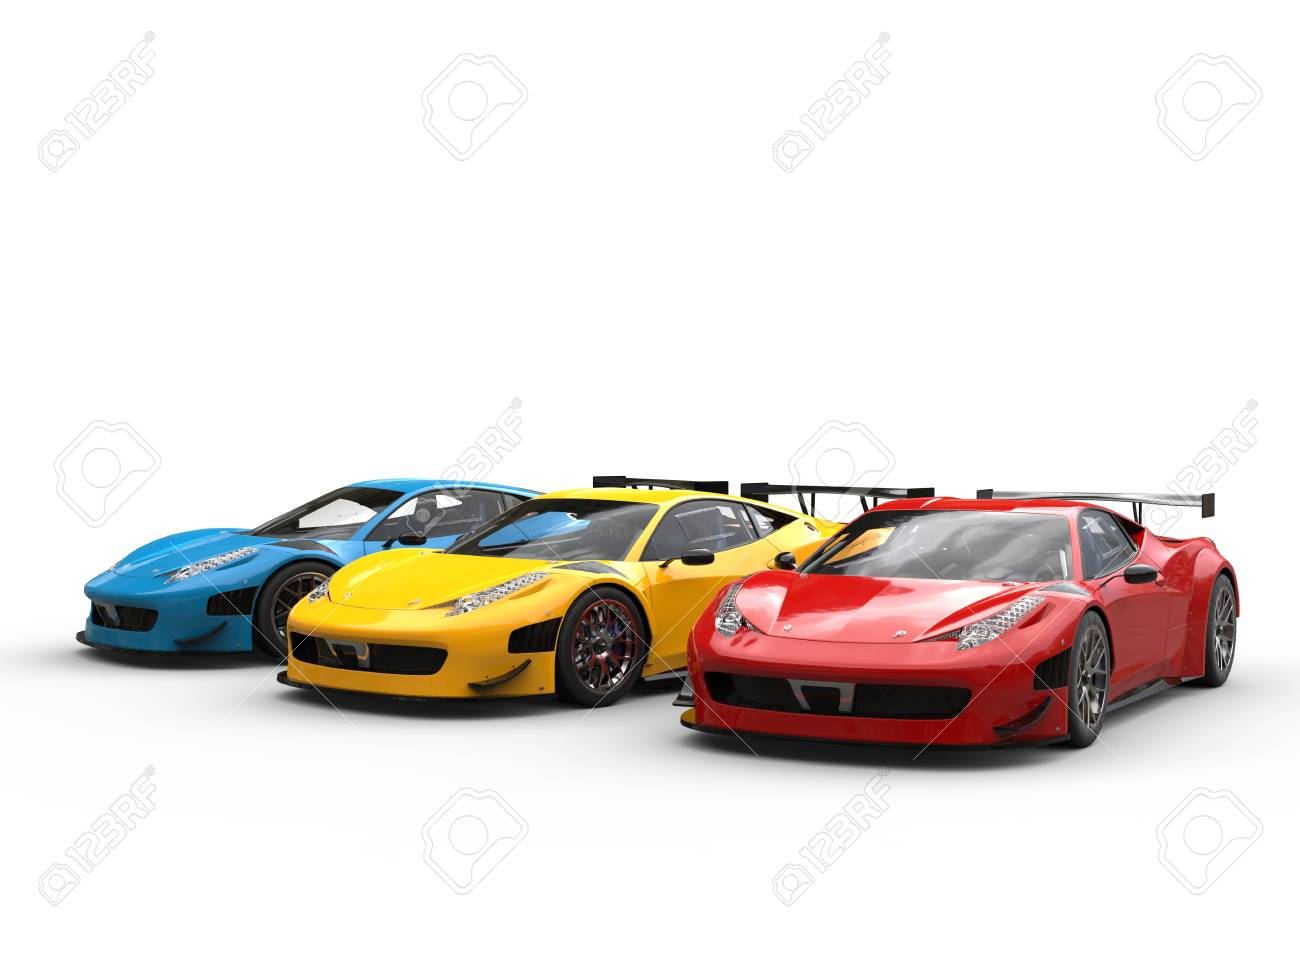 Modern Luxury Sportscars In Red, Yellow And Blue - Studio Shot Stock